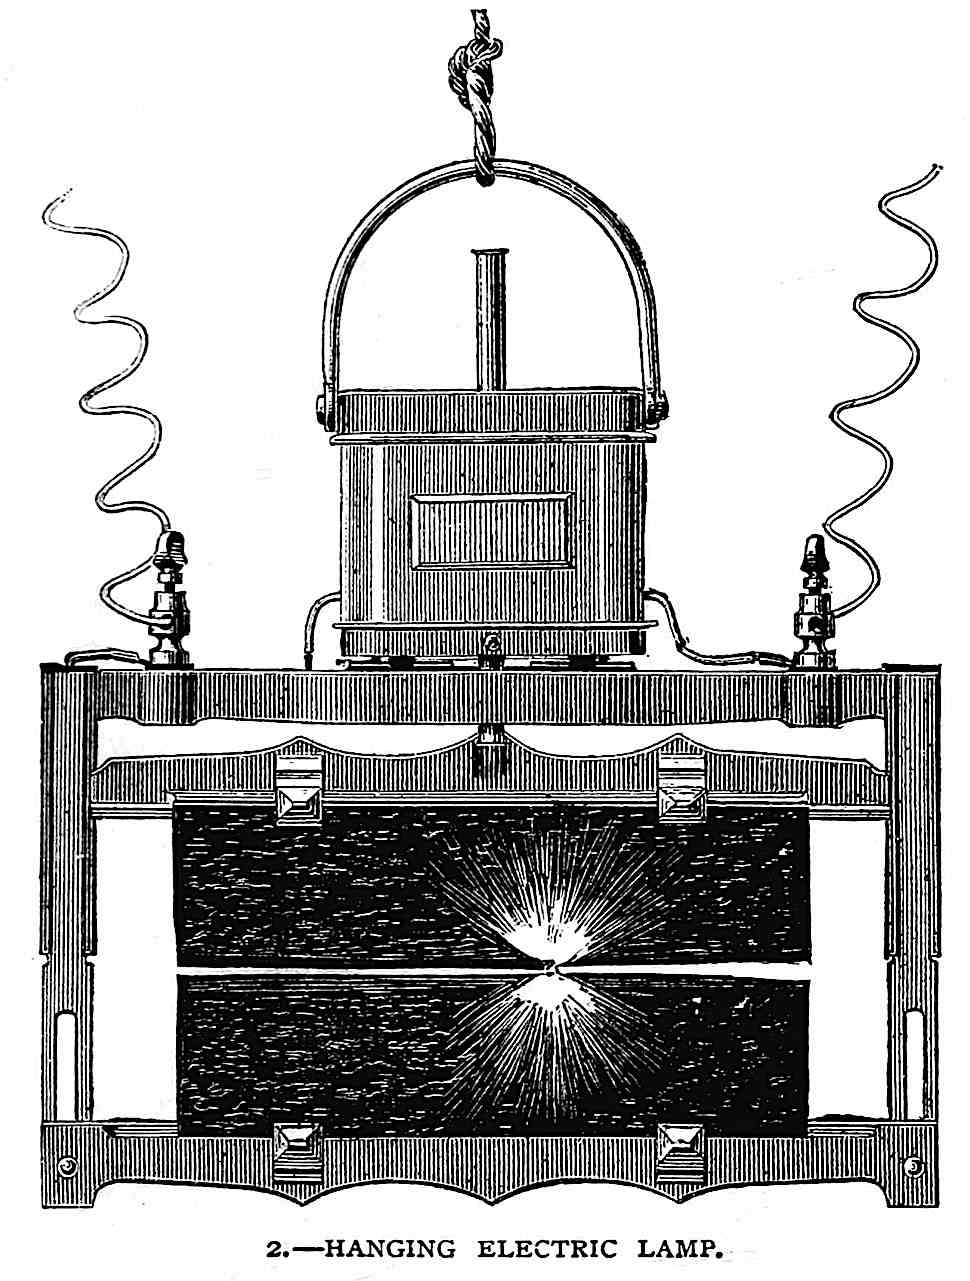 an 1870 hanging electric lamp illustration, dangerous and power wasting